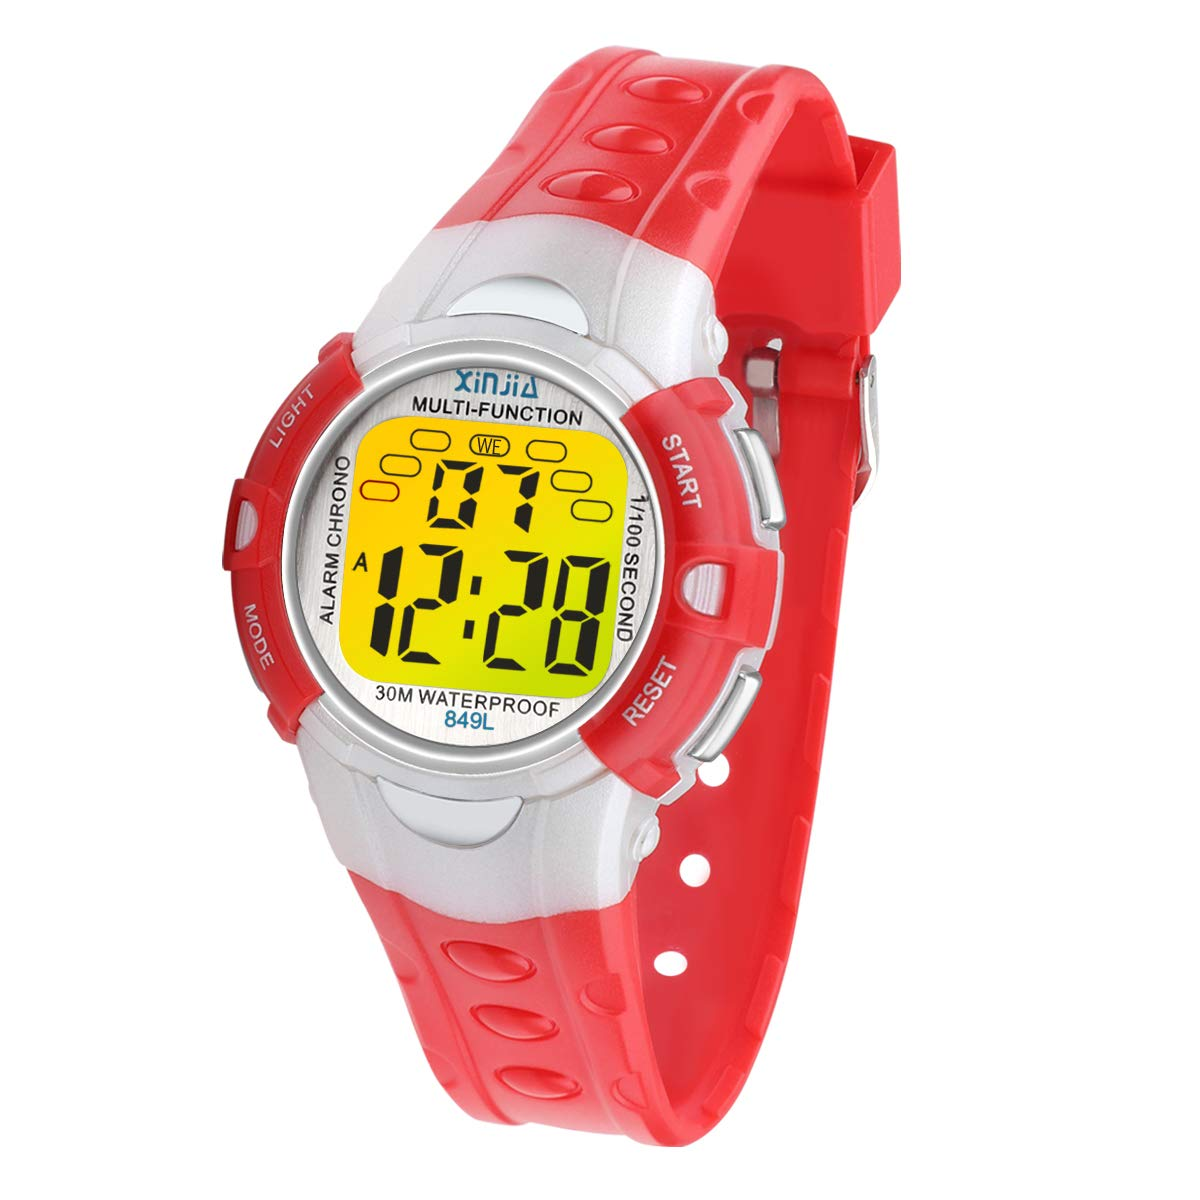 Digital Watches for Kids, 7 Colors LED Light Boys Girls Watch Waterproof Sports Watches Digital Watch for Children Gift 2-14 Years Old